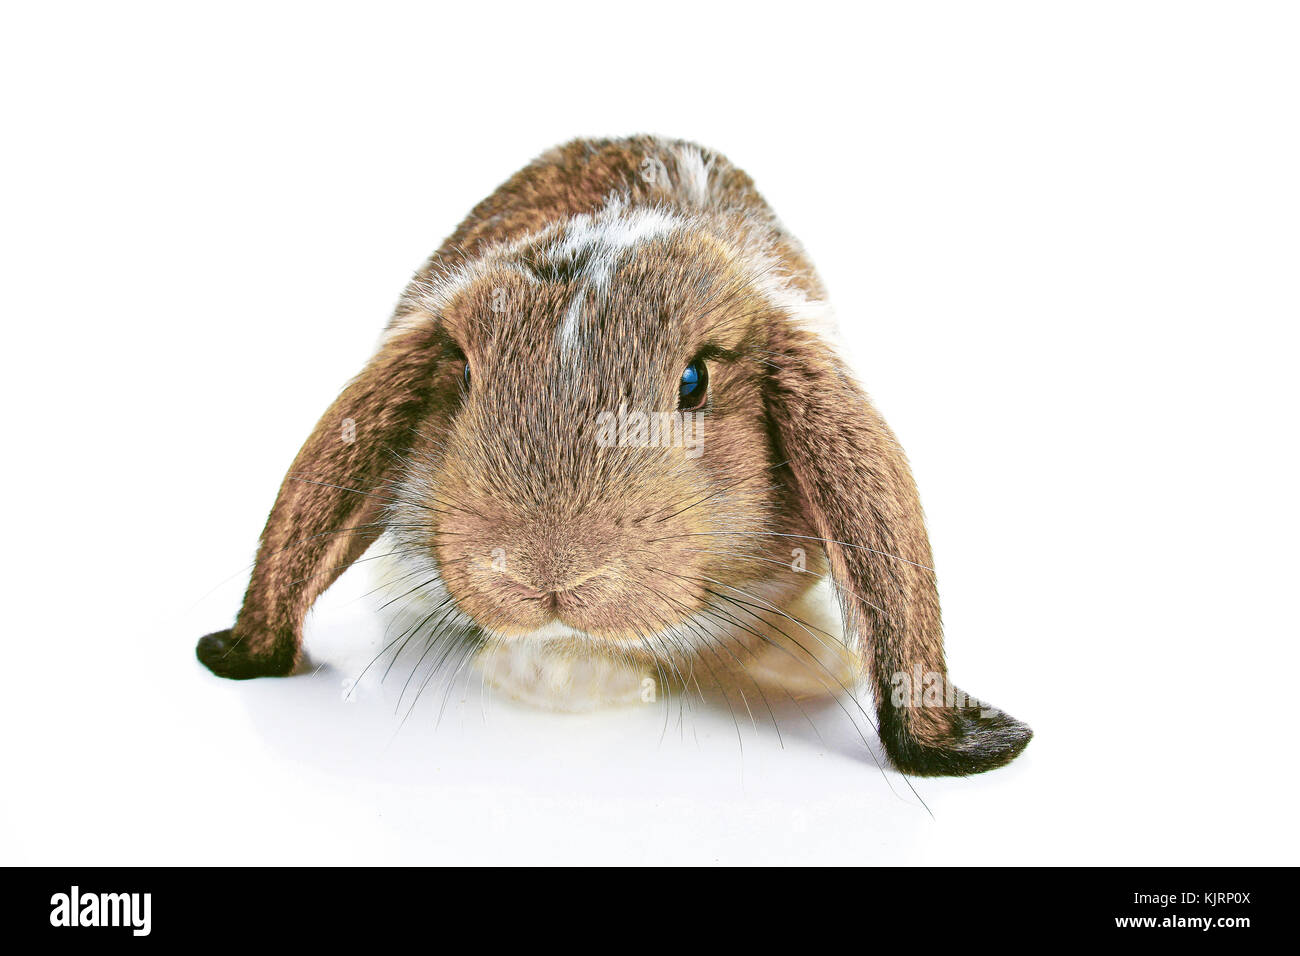 Agouti rabbit lop on isolated white studio background. NHD young baby bunny. Cute lop eared pet rabbit. Cute Animal - Stock Image